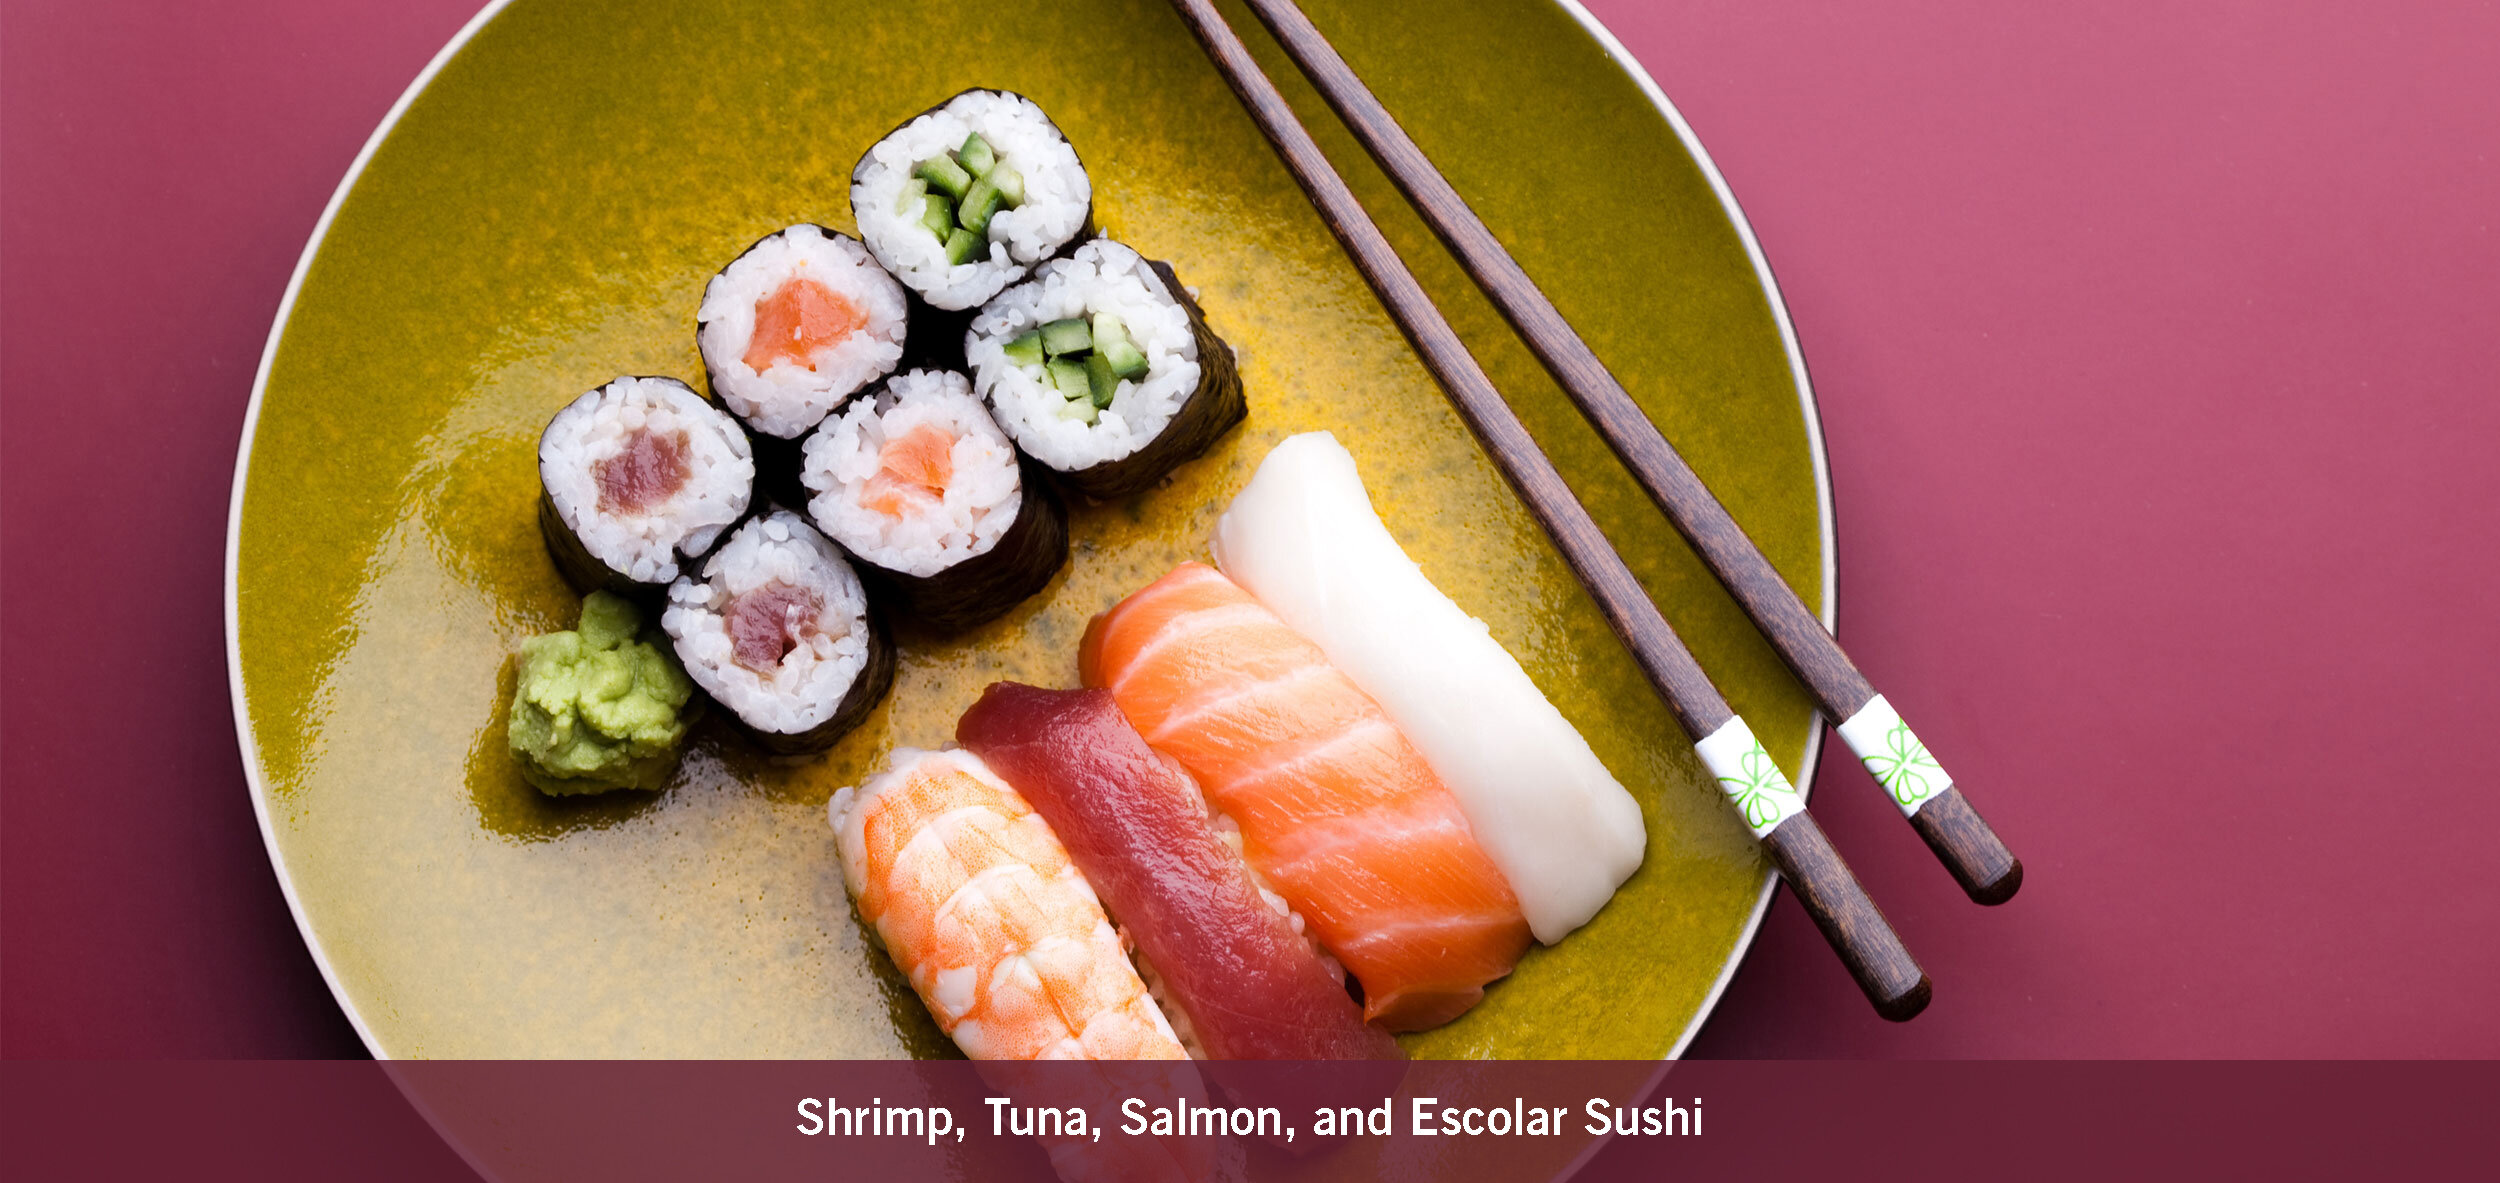 Shrimp, Tuna, Salmon, and Escolar Sushi